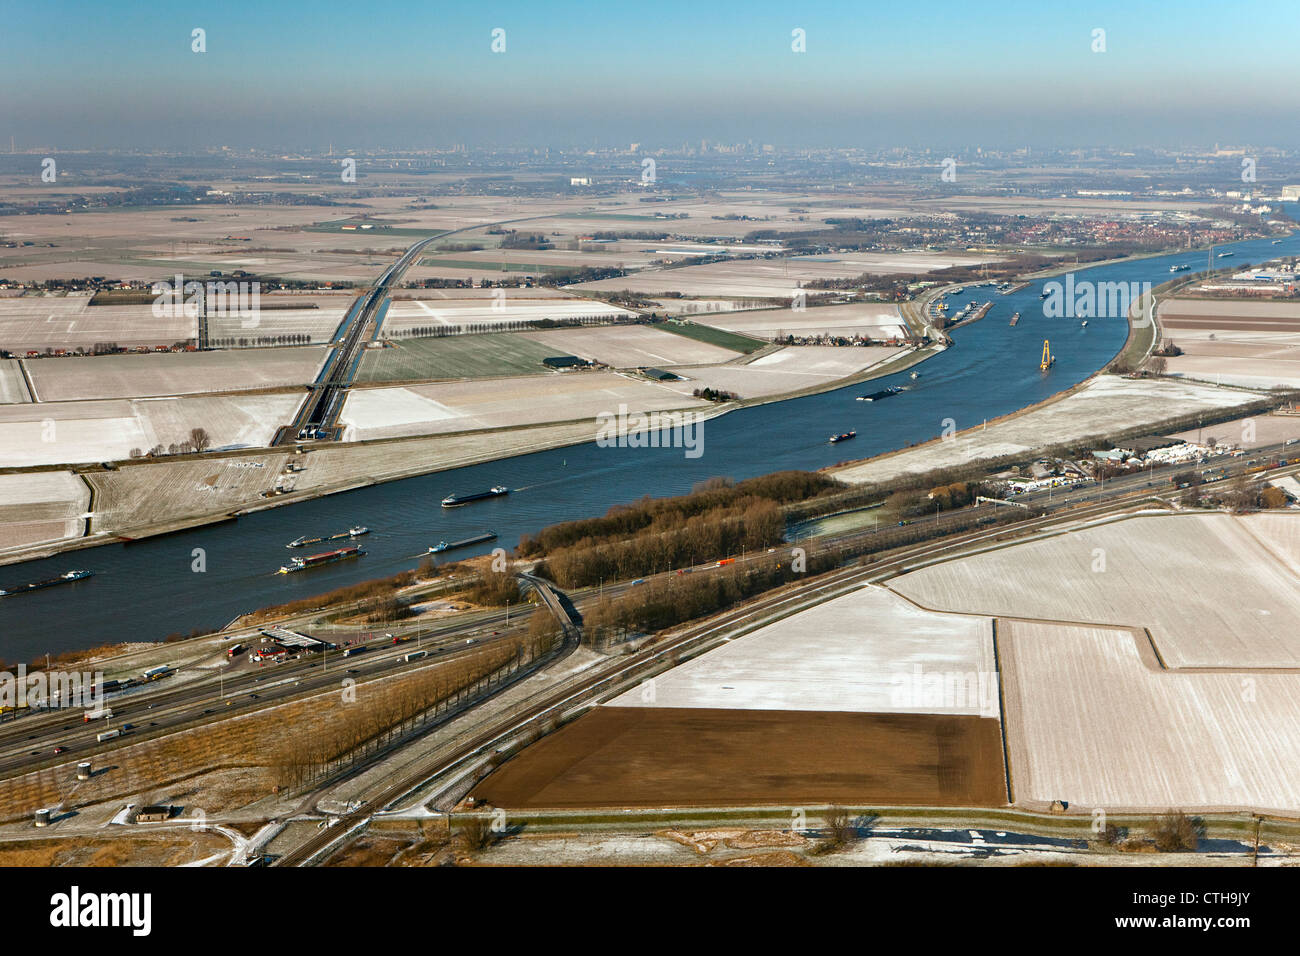 The Netherlands, Willemsdorp, near Dordrecht, Cargo ships in river called Dordtse Kil and A16 highway. Winter. Frost. - Stock Image